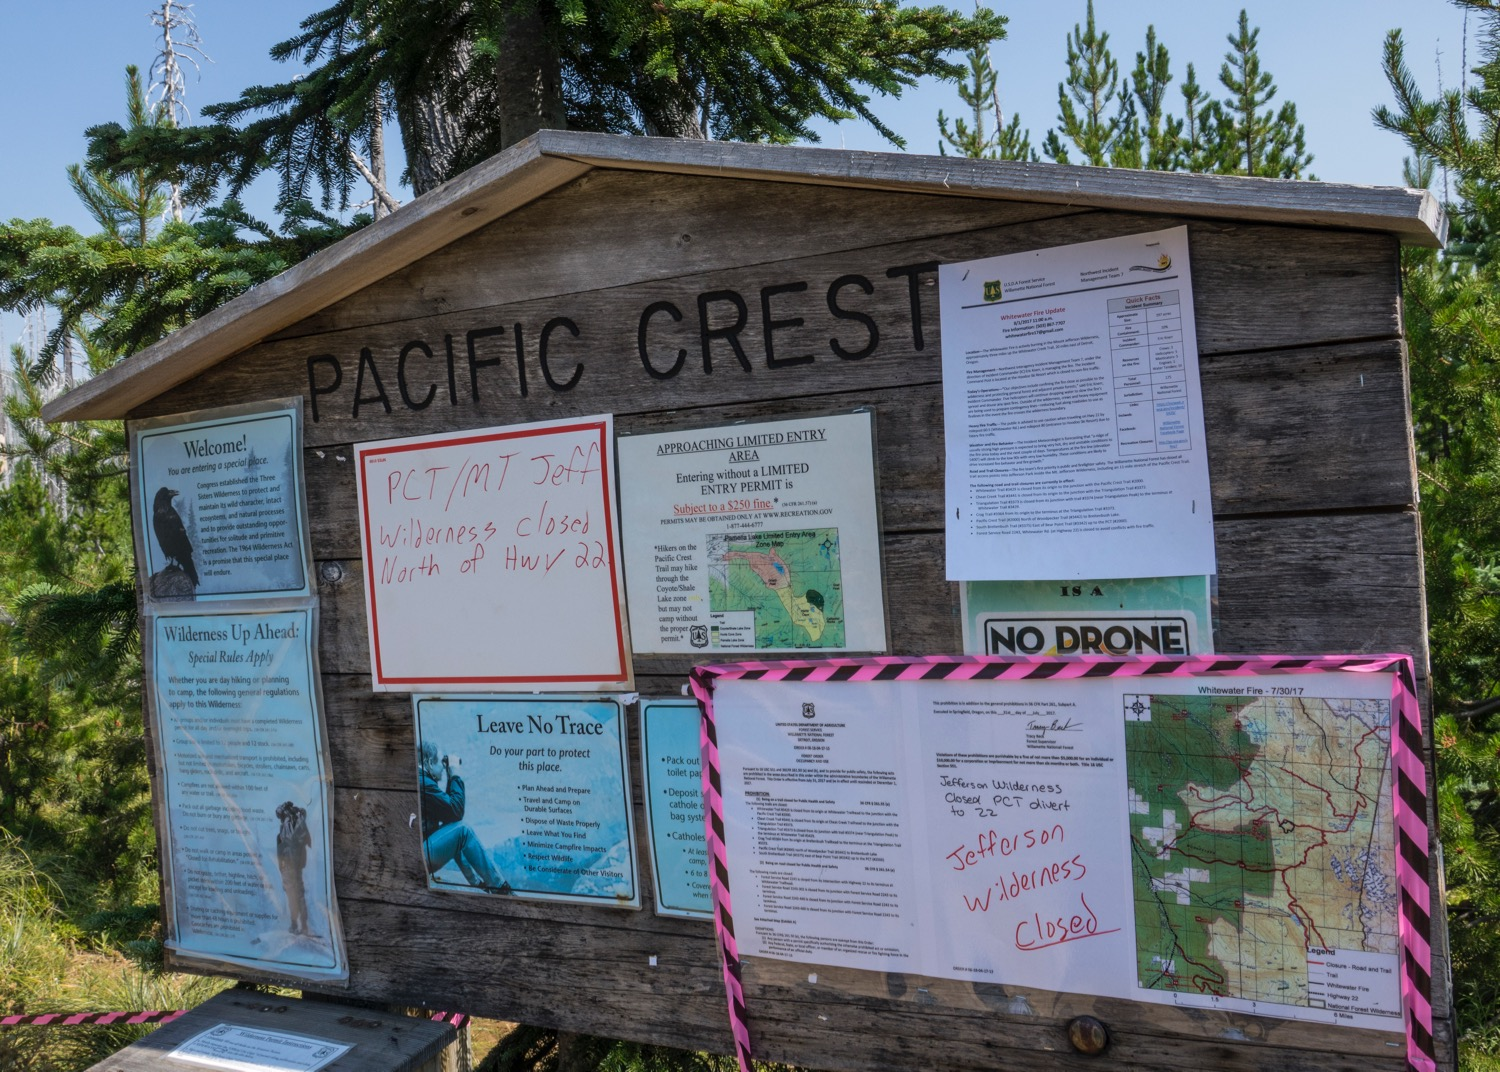 My goal to hike part of the PCT was foiled, as the whole area was closed due to the fires.